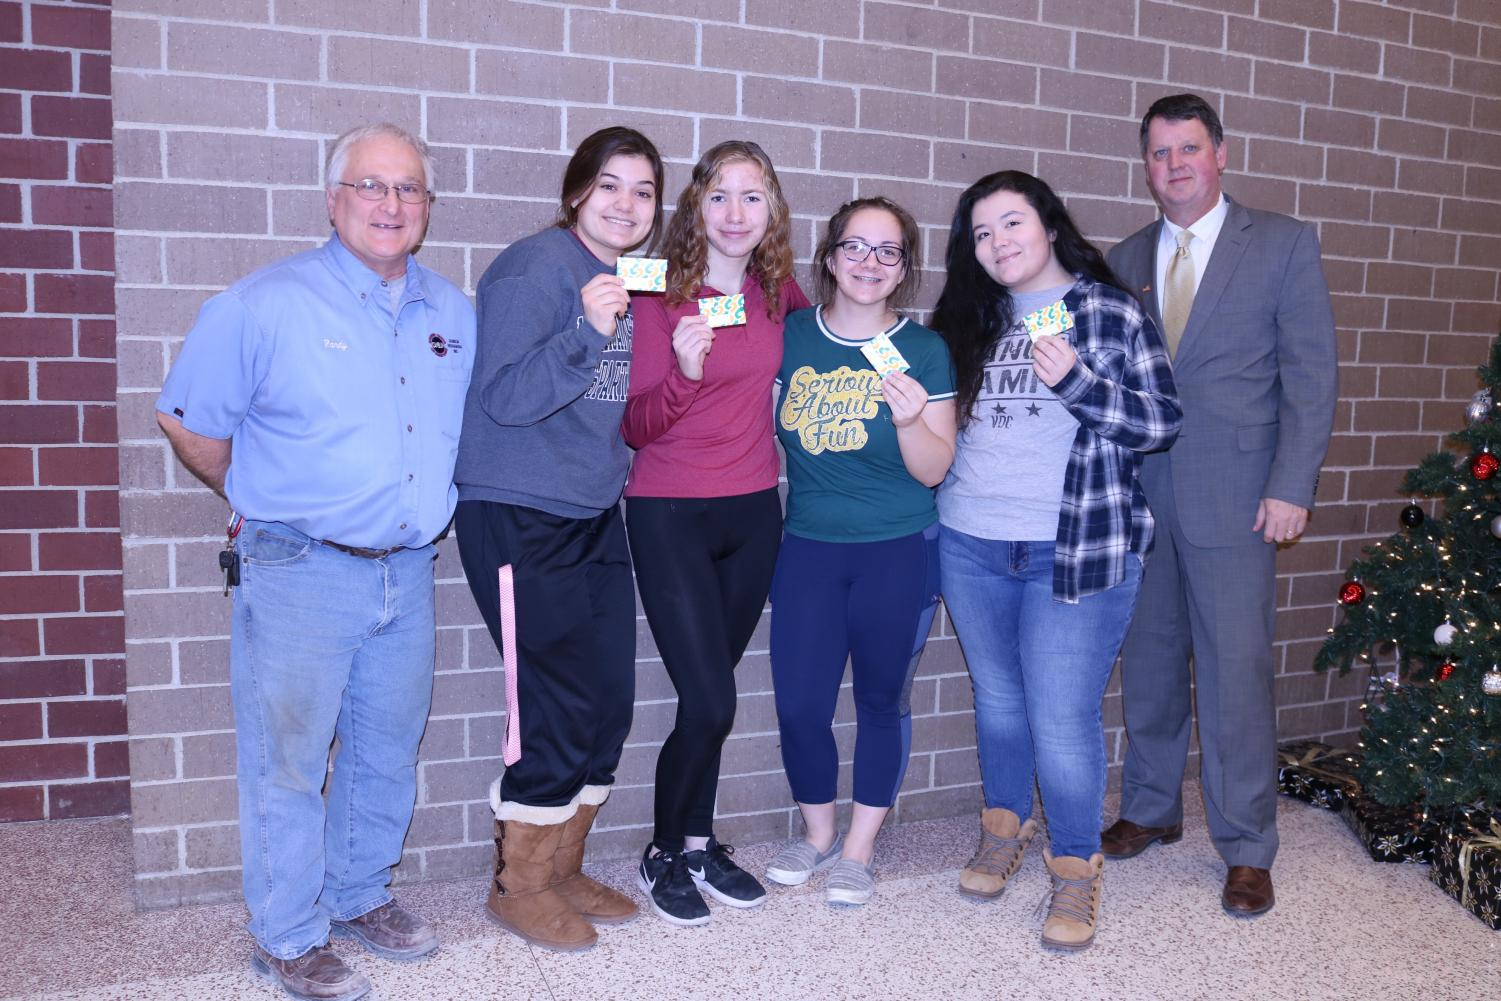 WE WON - Four of five winners of the gift cards smile with Randy Watts and superintendent Steve Barber. Winners included Cammey Klindt, Hannah Carlson, Dazia Sorensen, Lia Lillard and not-pictured was Trista Flathers.